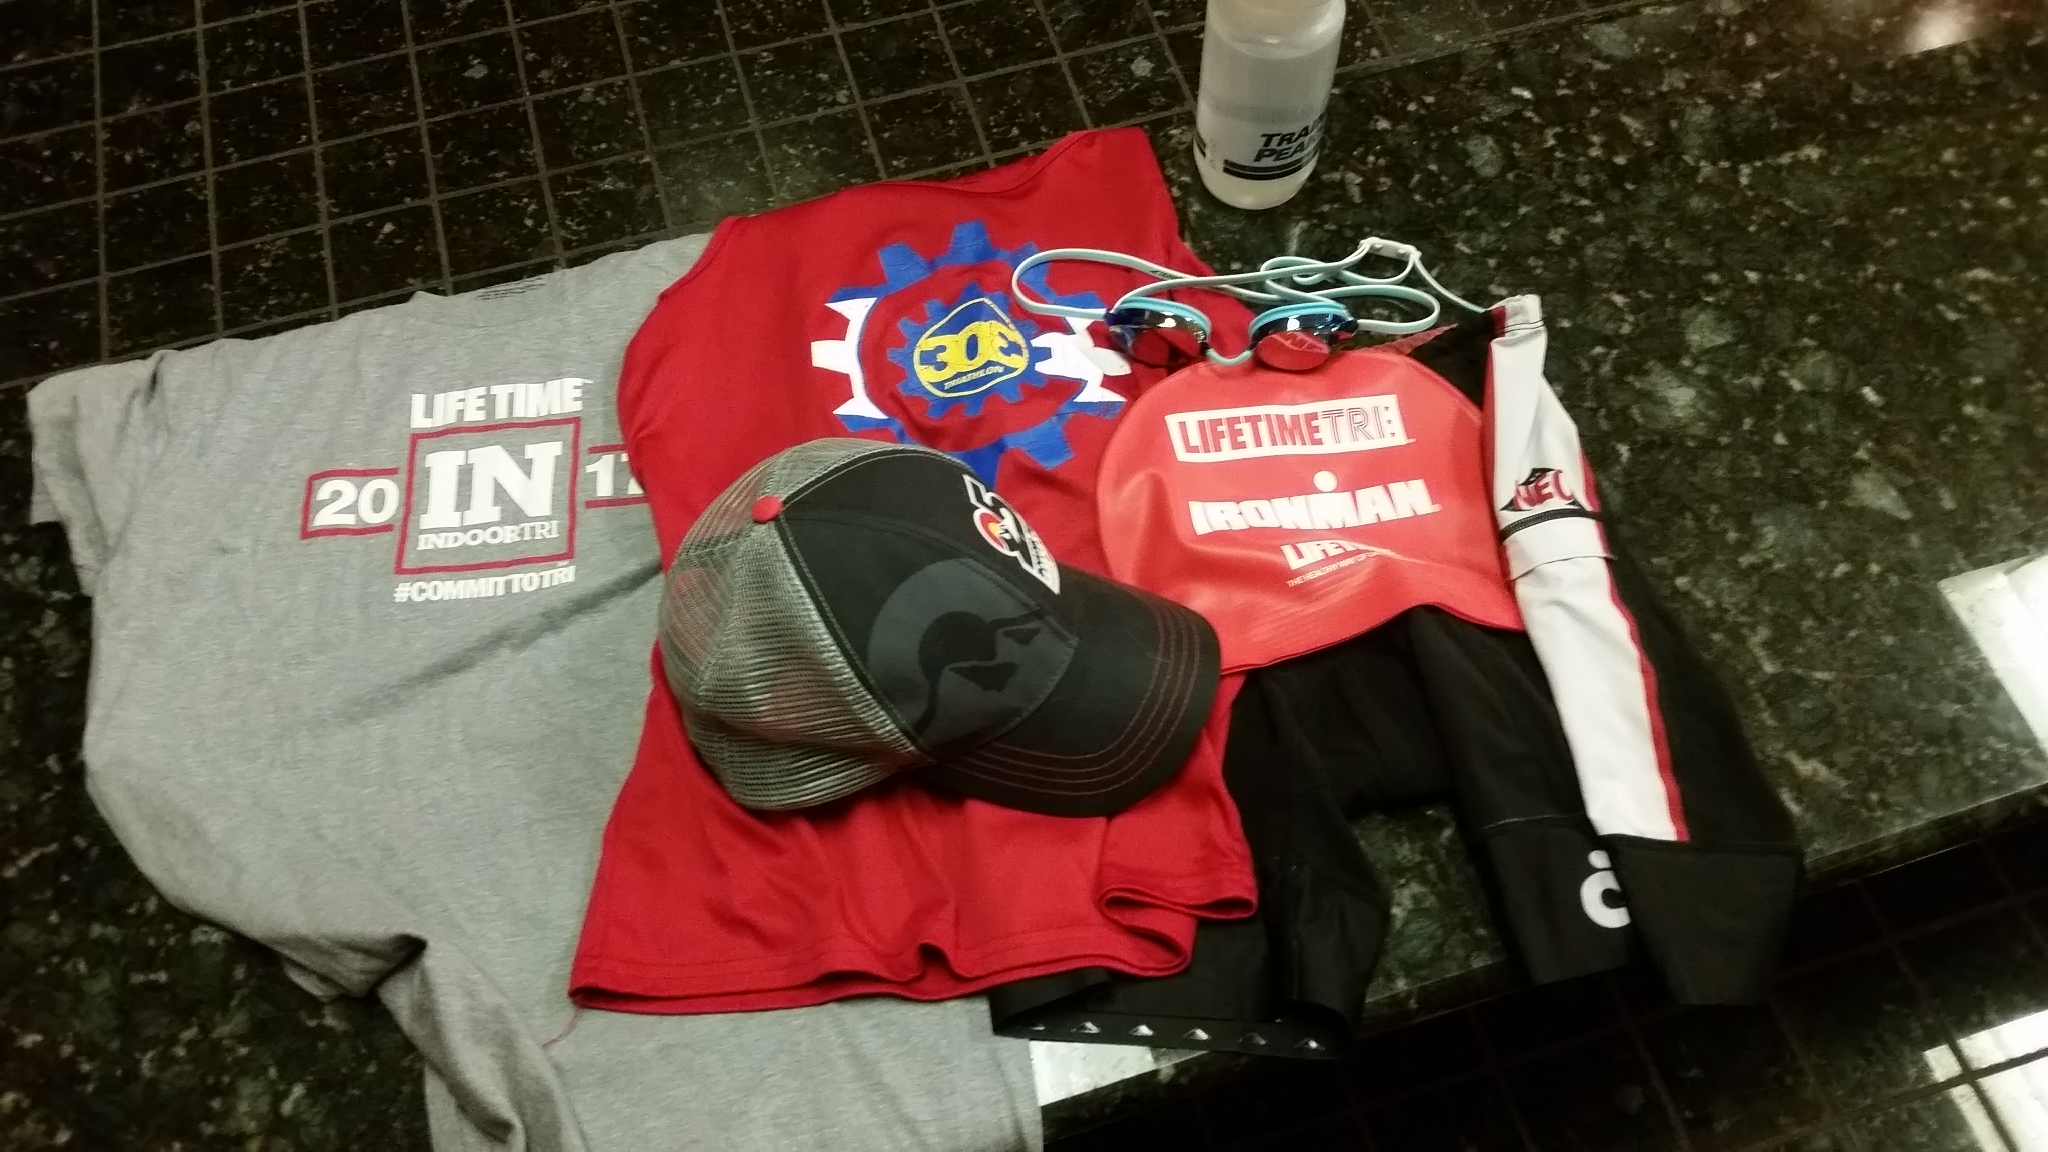 Life Time Fitness Indoor Tri Race Report And Why It